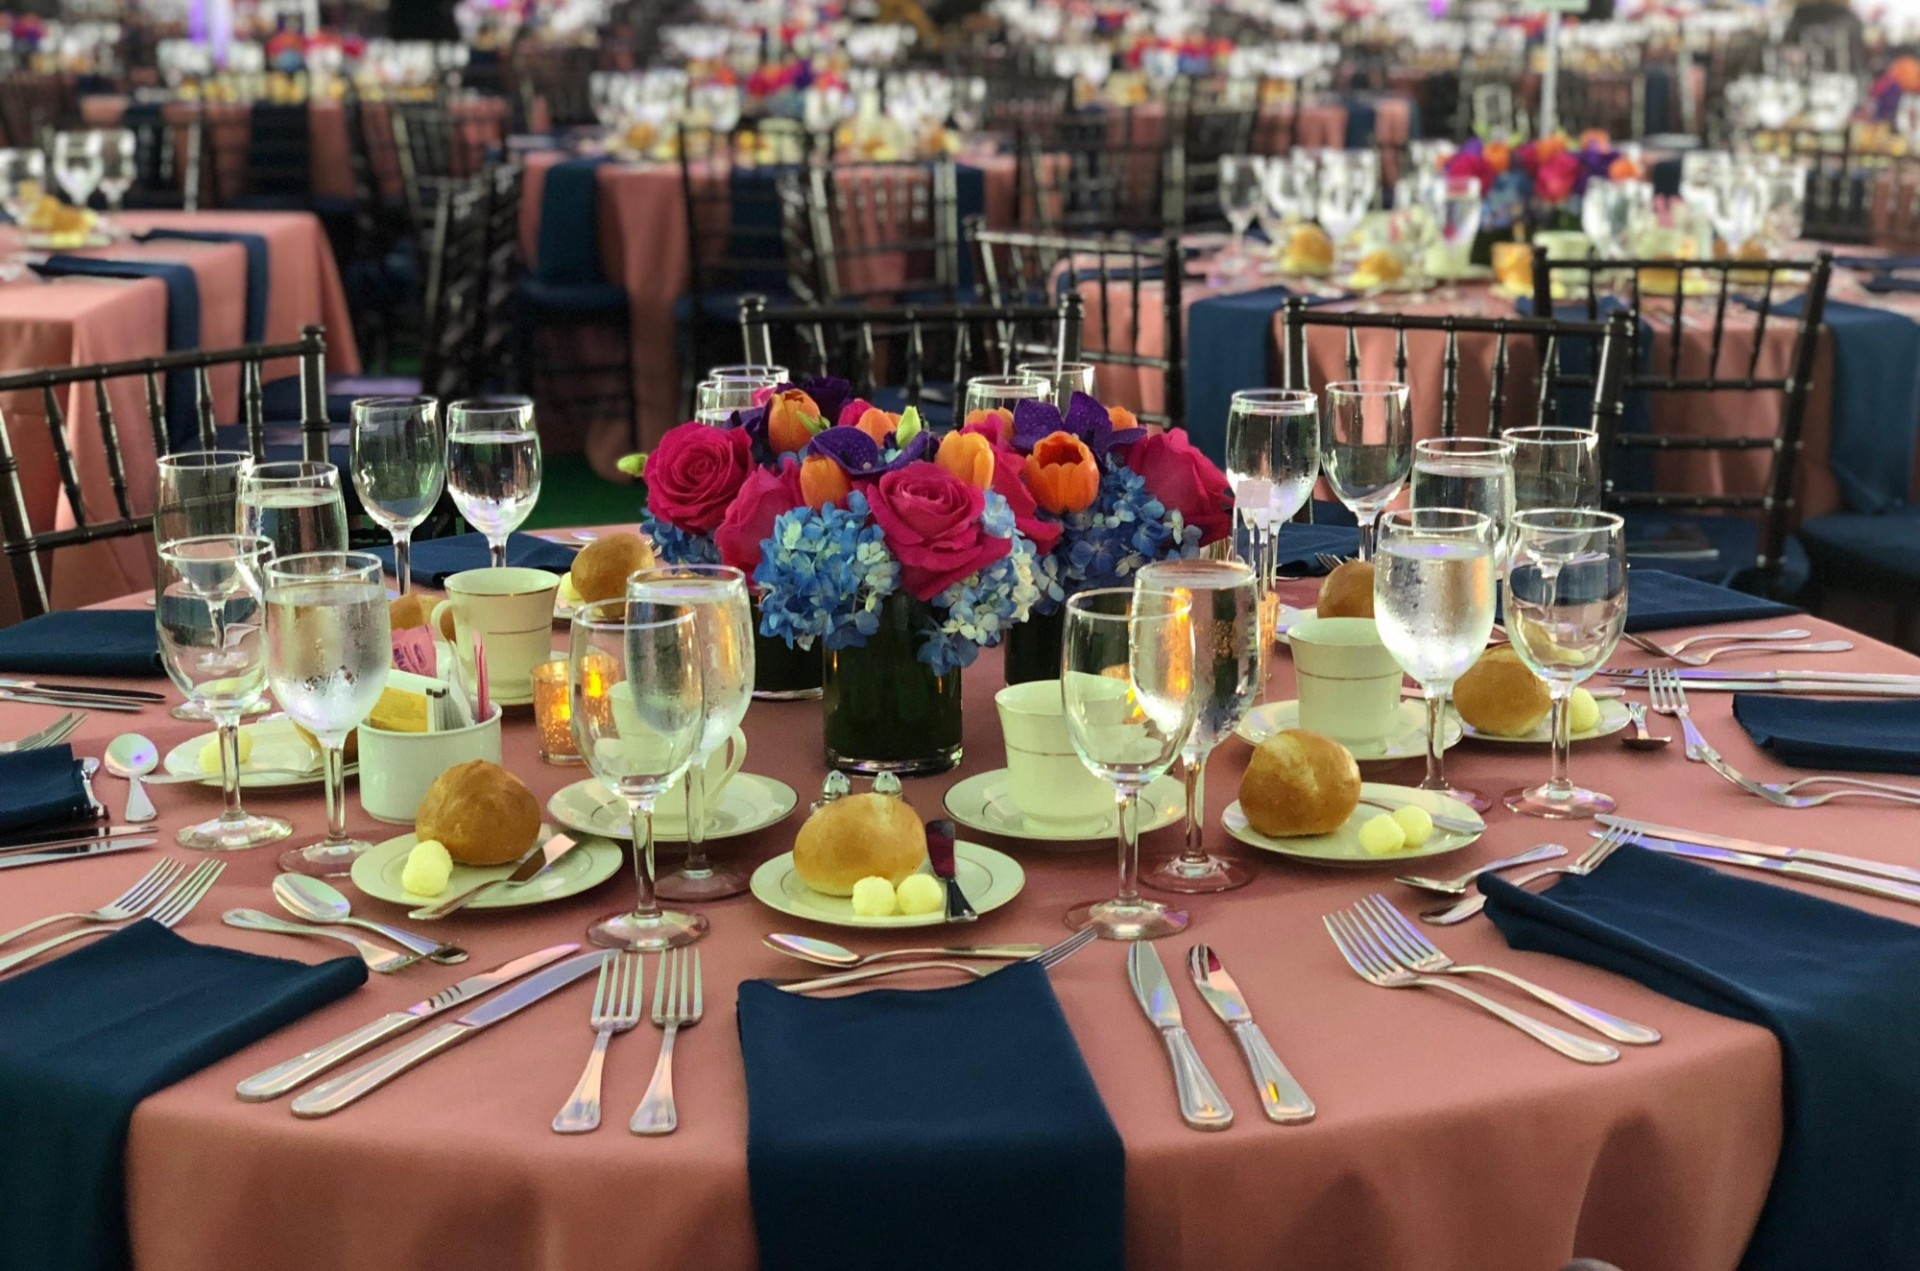 A banquet round is dressed with a pink tablecloth and navy blue napkins. Dinner rolls are placed at every place setting. At the center of the table is a fresh floral arrangement.